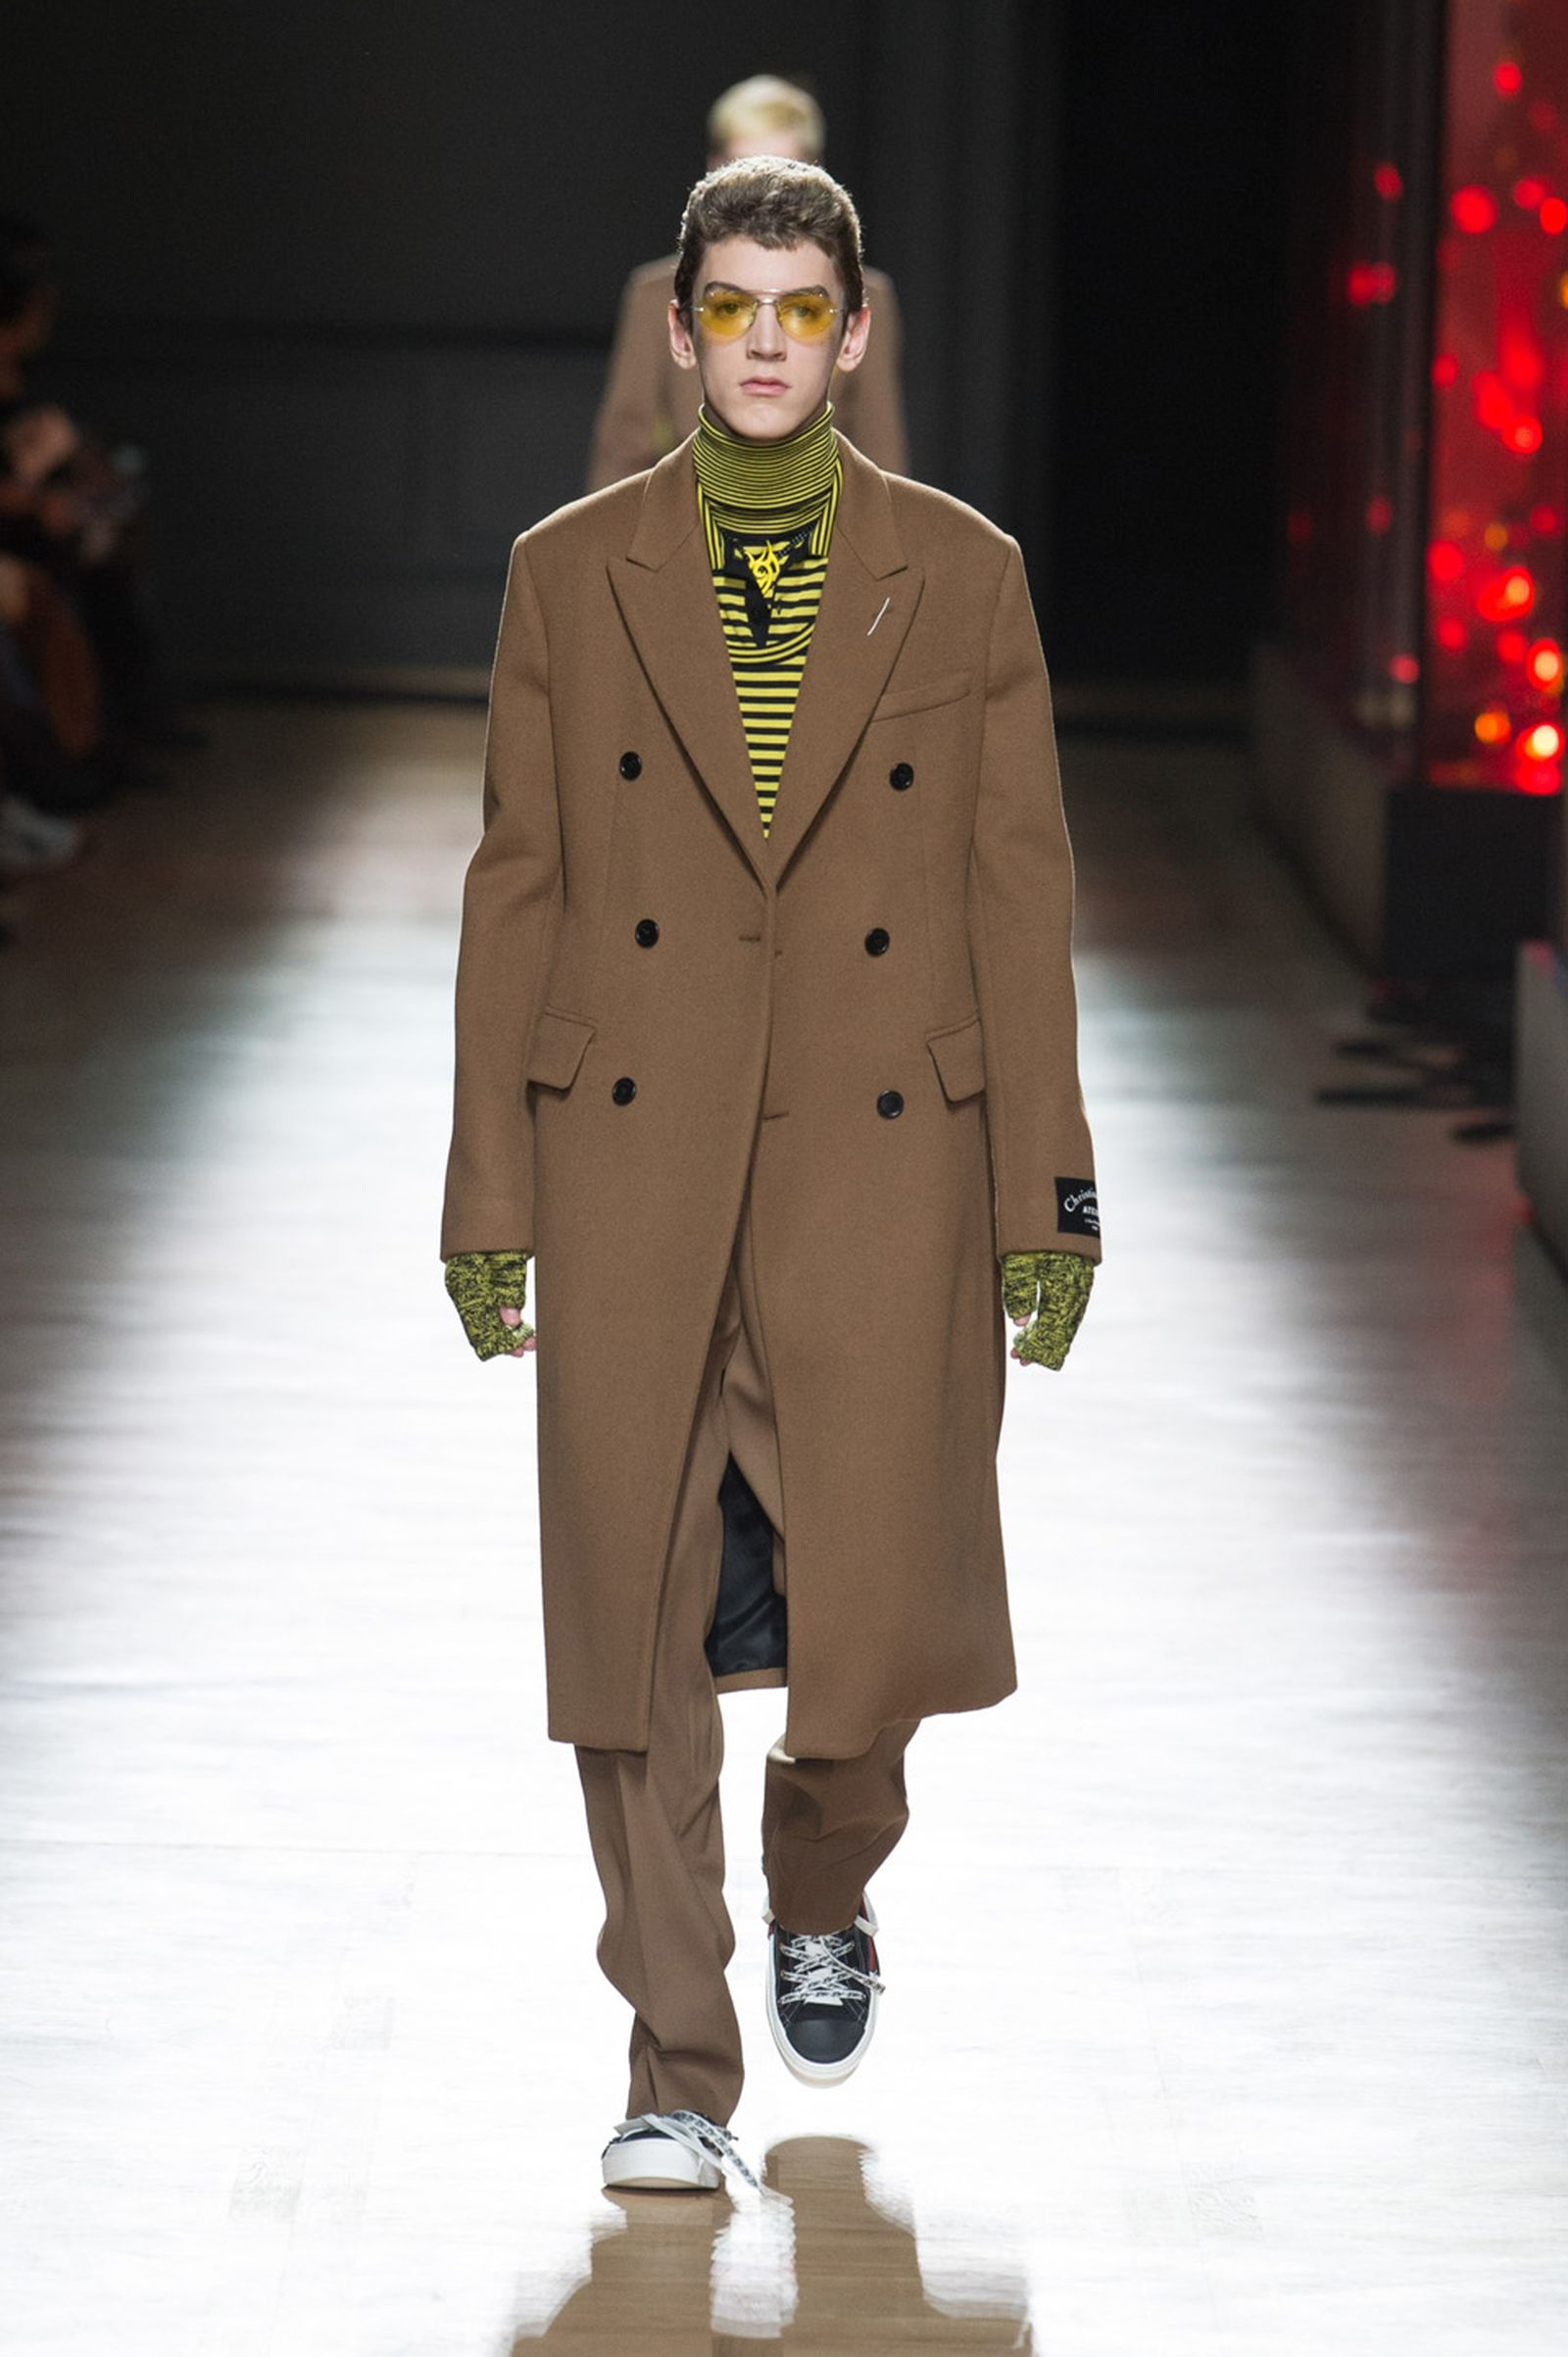 DIOR HOMME WINTER 18 19 BY PATRICE STABLE look36 Fall/WInter 2018 runway